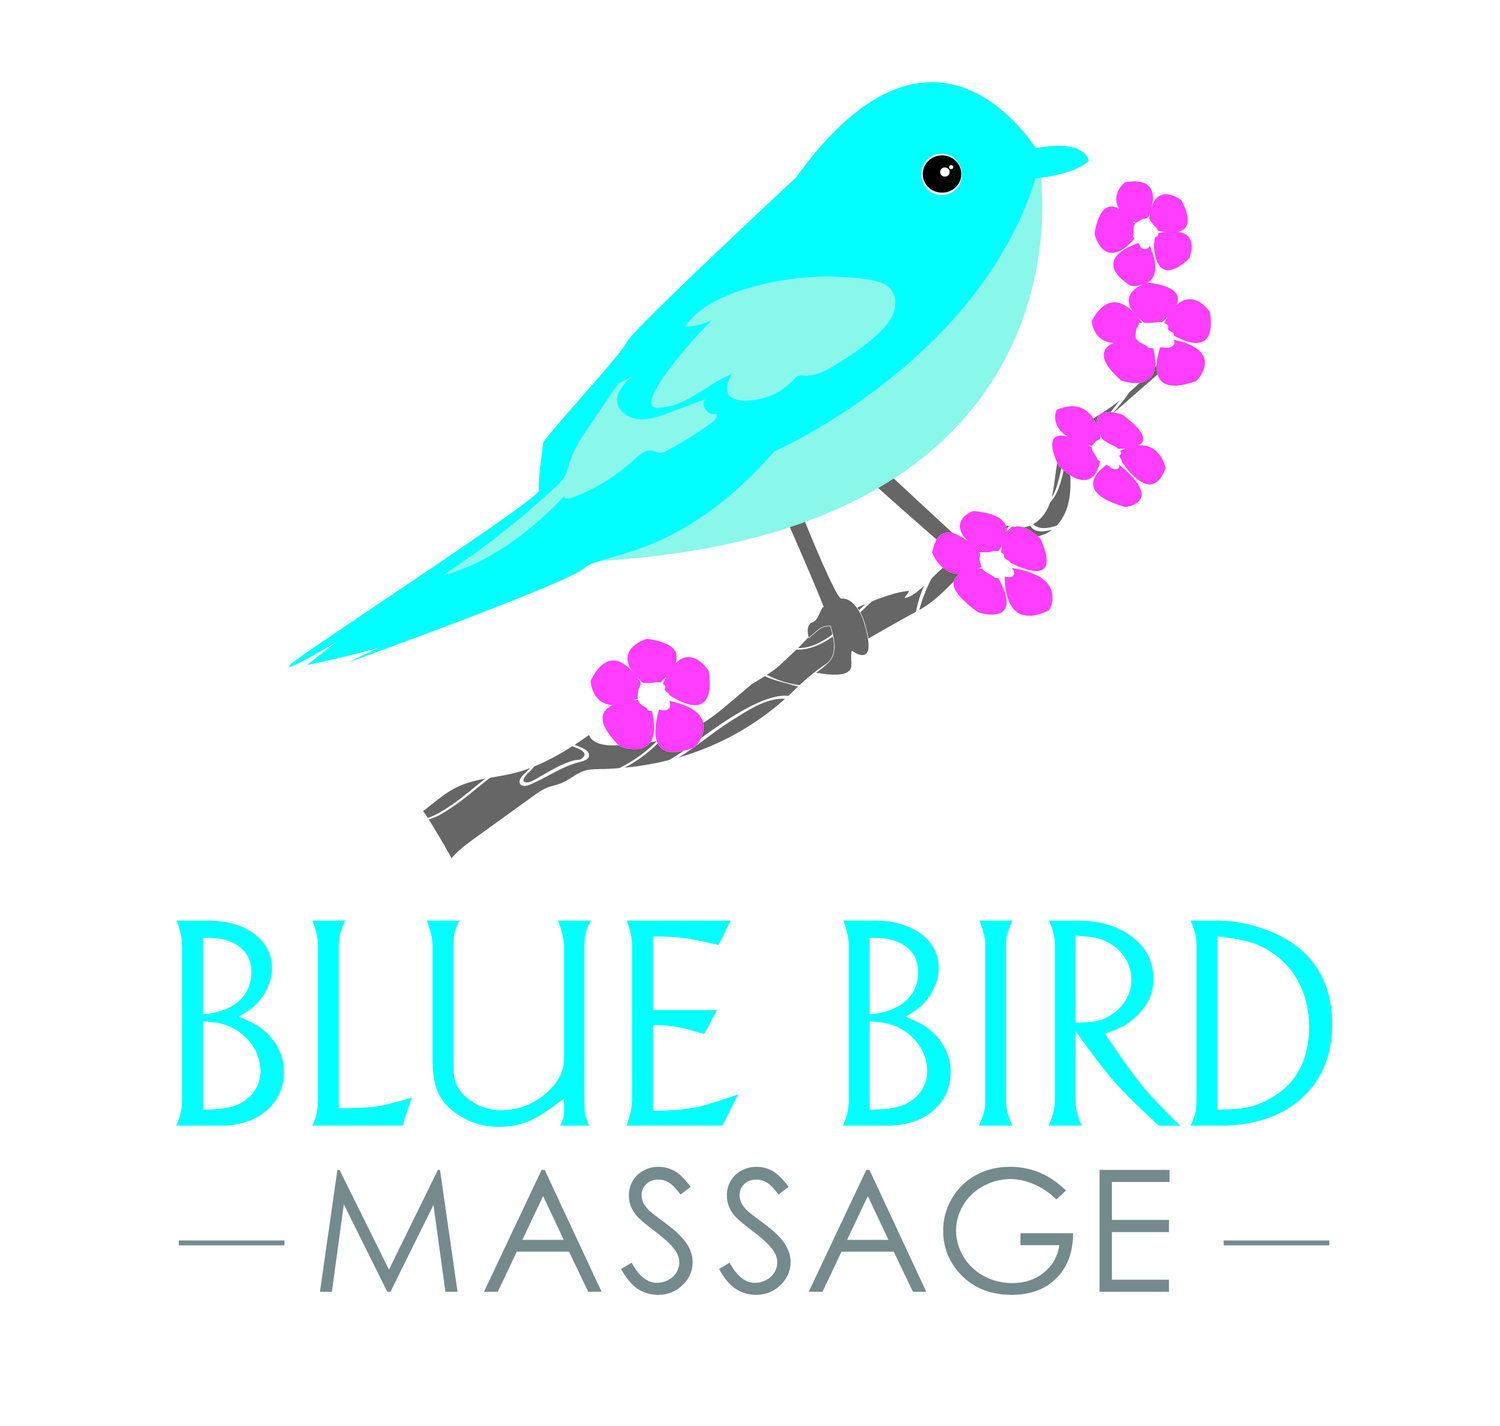 Blue Bird Massage